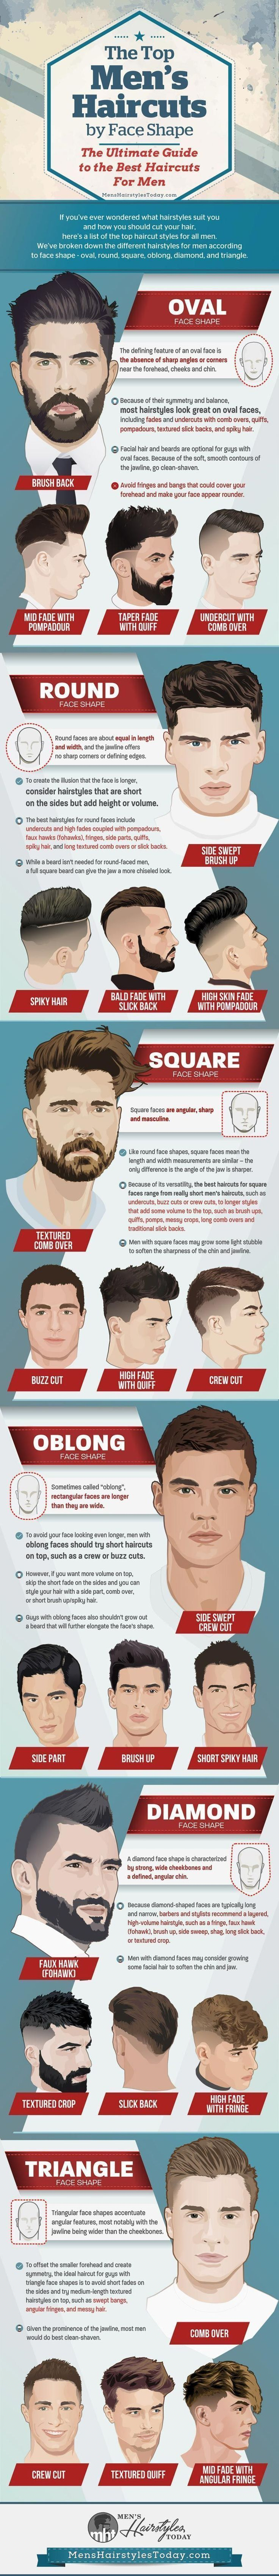 The Best Hairstyles For Men By Face Shape The Ultimate Guide to Cool Men s Haircuts